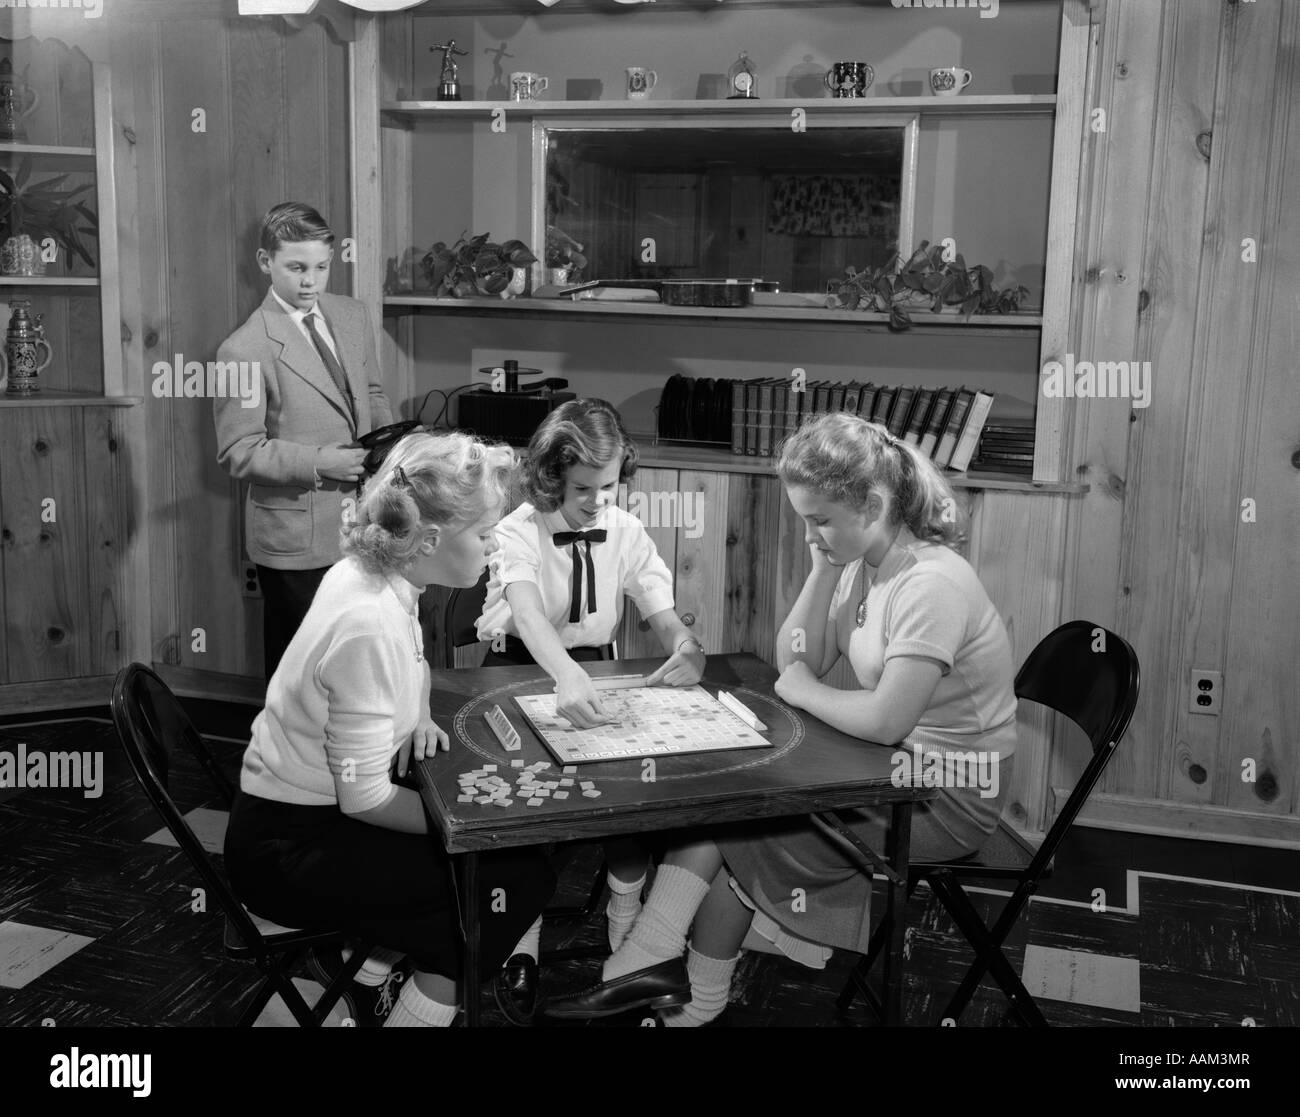 1950s GIRLS PLAYING SCRABBLE IN REC ROOM WITH BOY CHANGING RECORDS - Stock Image